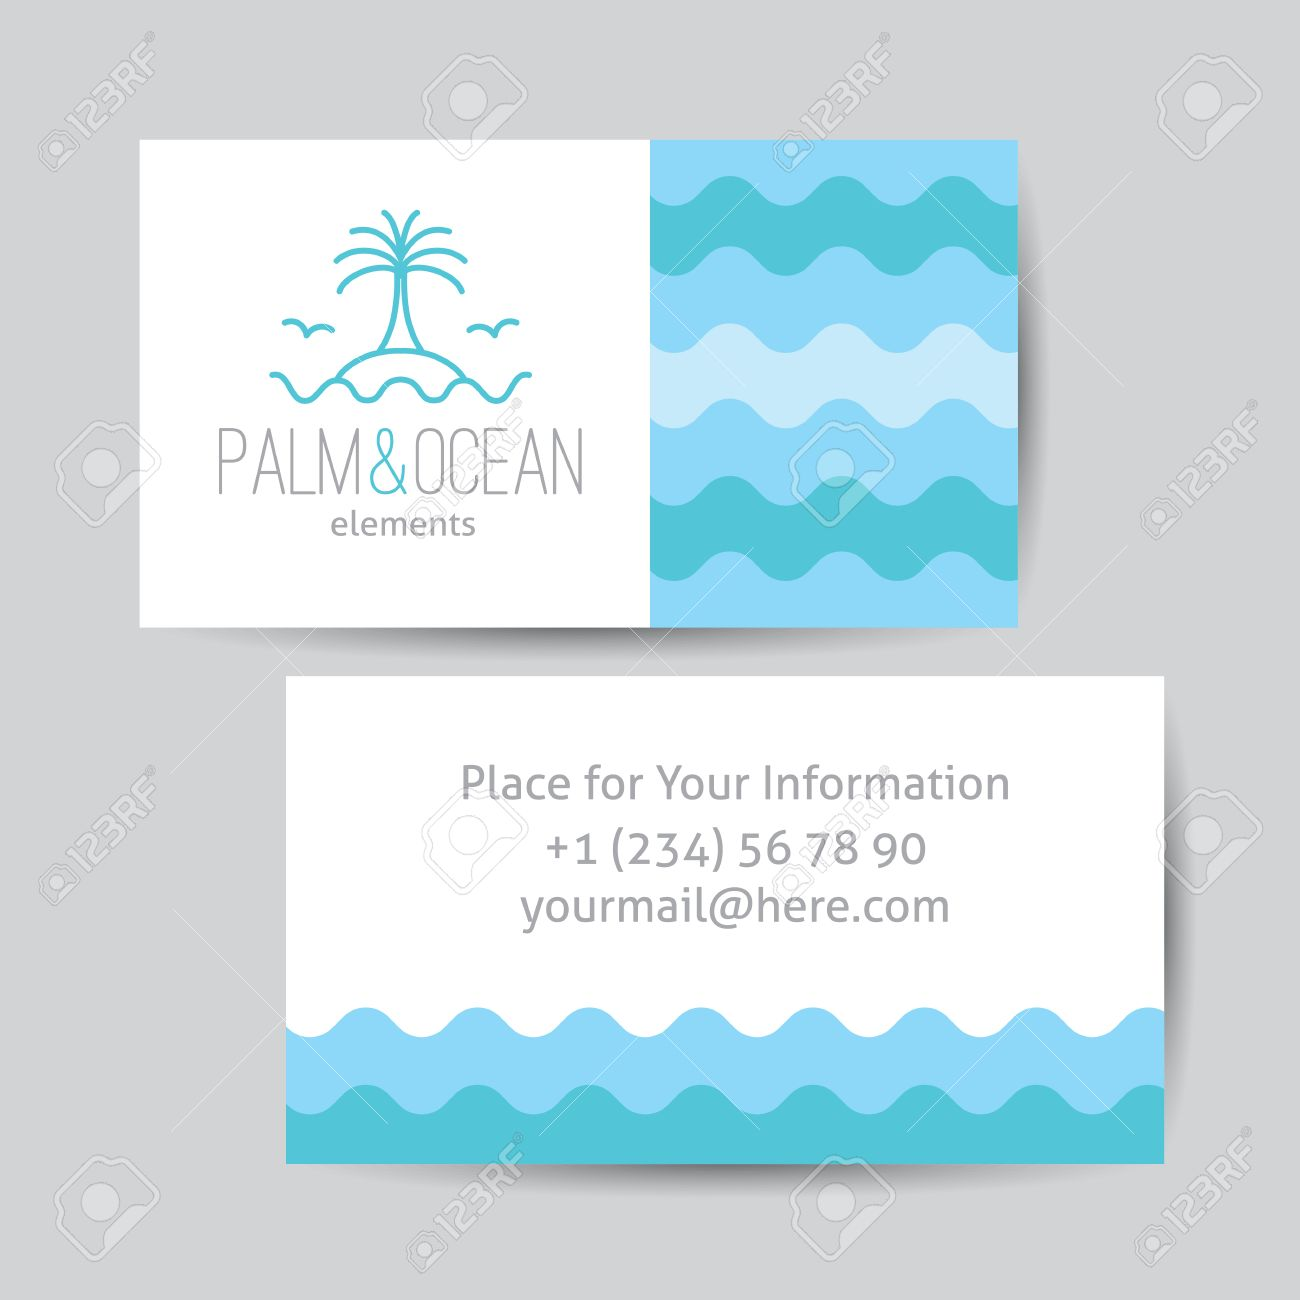 Business card template for travel agency palm seagulls island business card template for travel agency palm seagulls island and waves single flashek Image collections